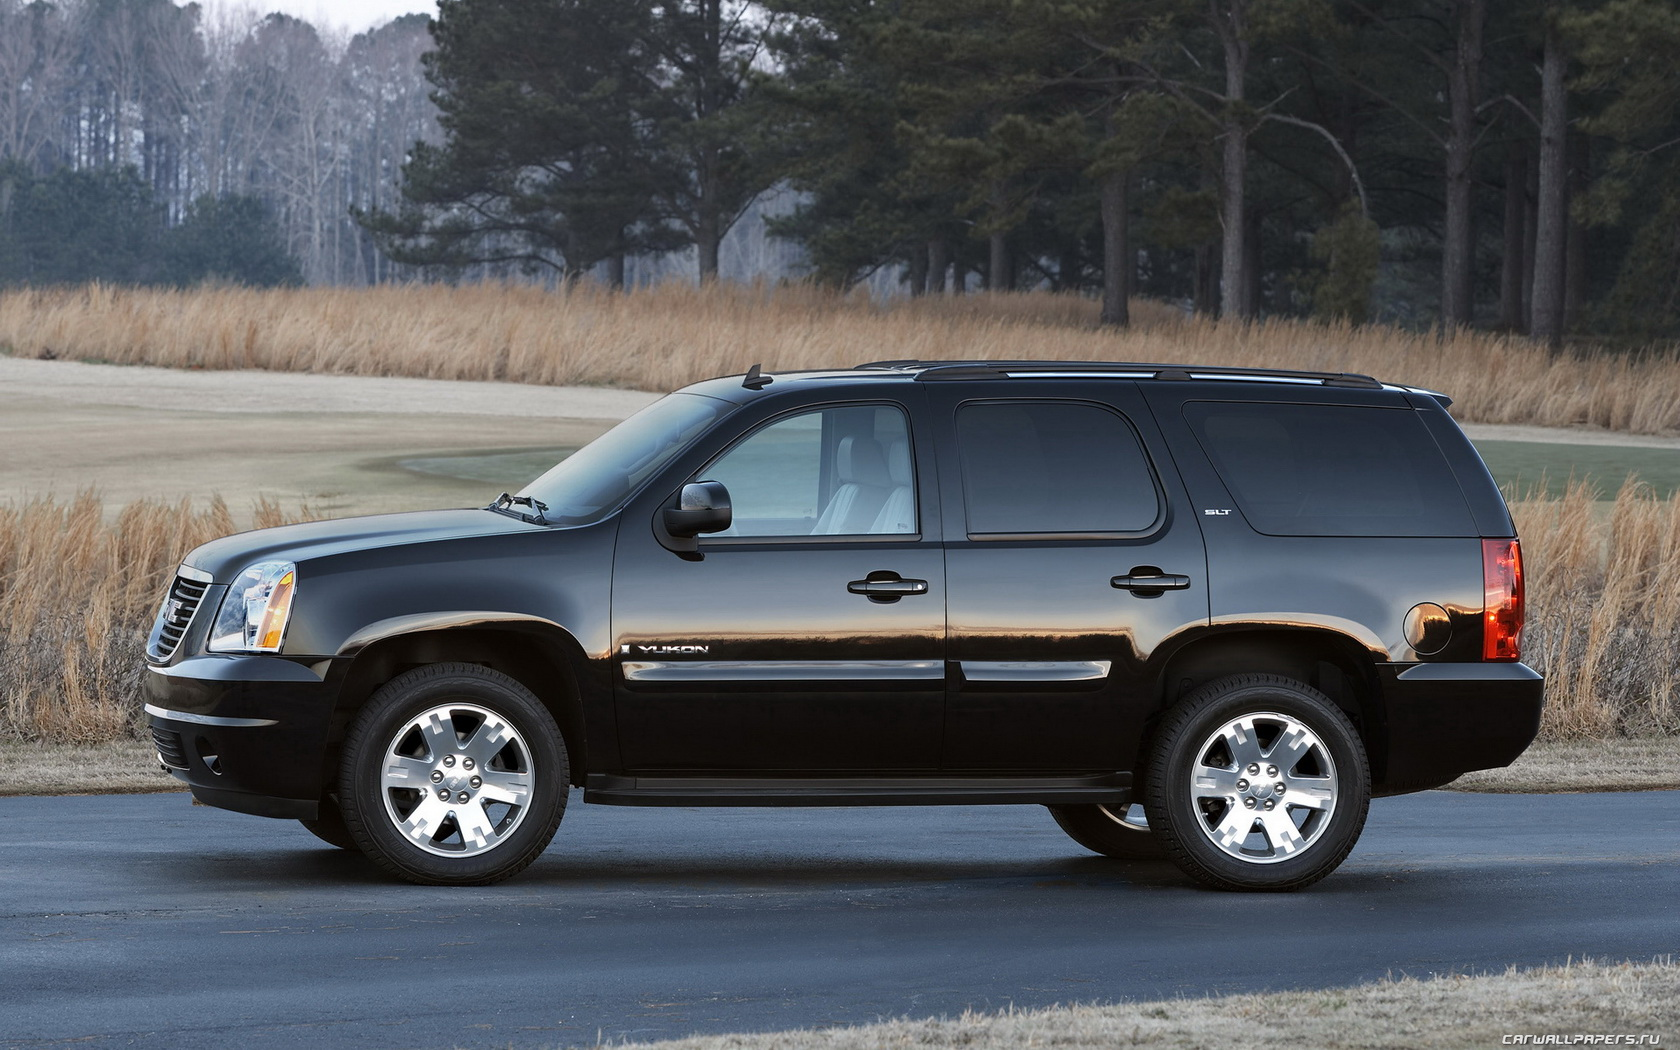 for sale finance portland leases gal buick or mm resize from item of new sierra prices offers gmc denali stage lease img